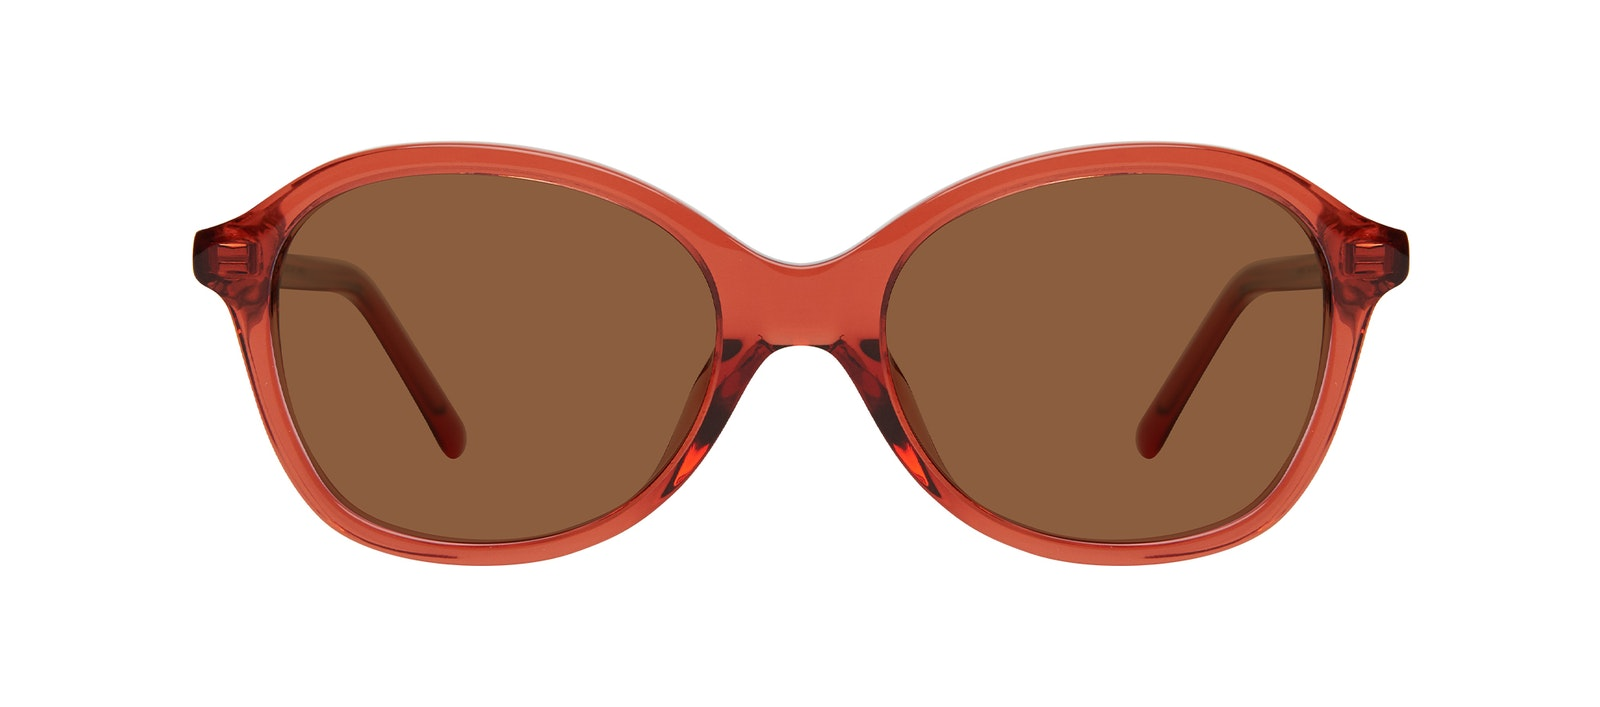 Affordable Fashion Glasses Square Sunglasses Kids Play Junior Brick Front